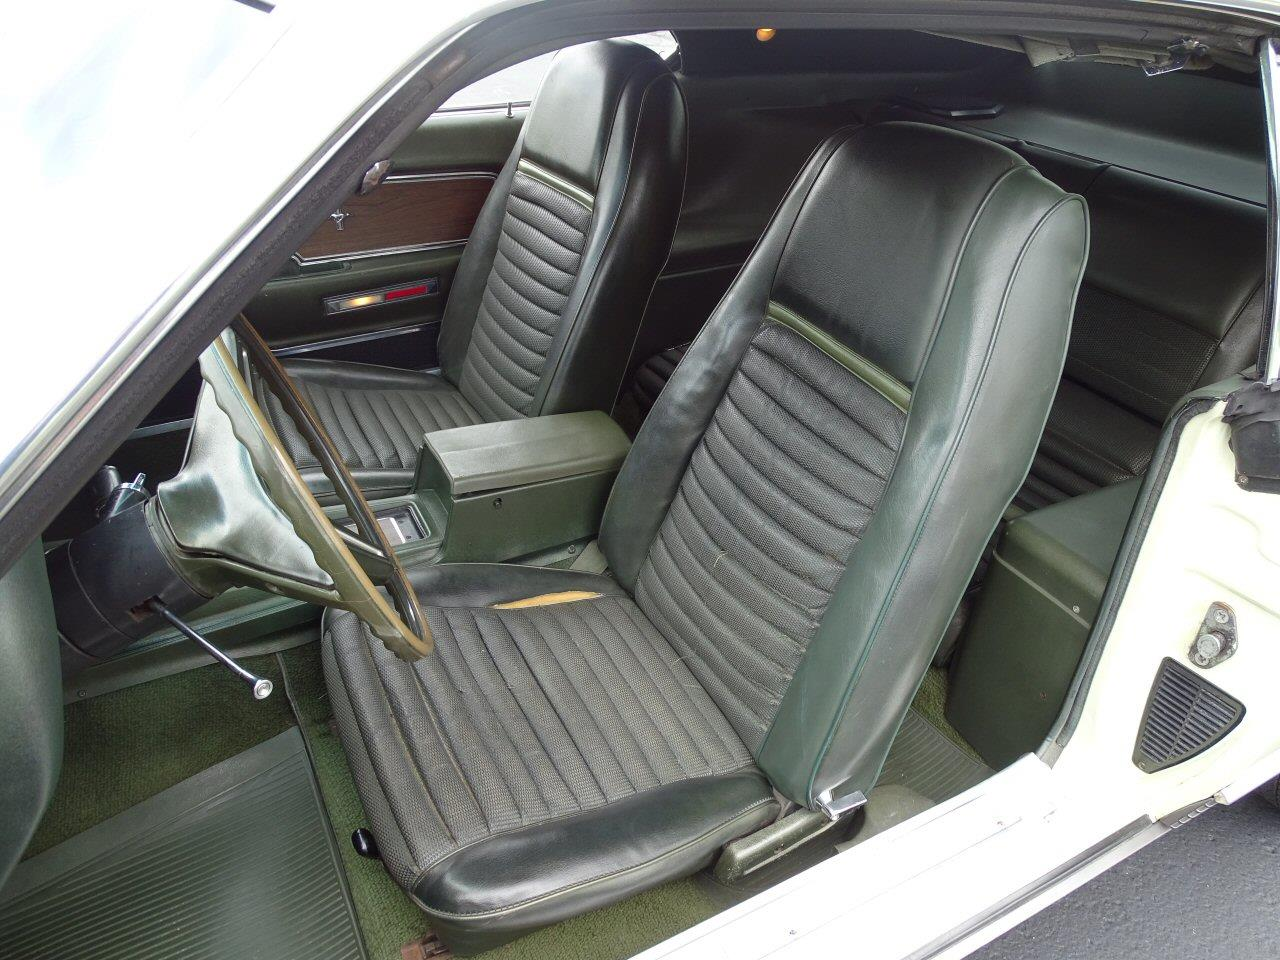 Large Picture of 1970 Mustang located in Indianapolis Indiana - $47,595.00 Offered by Gateway Classic Cars - Indianapolis - L70Y